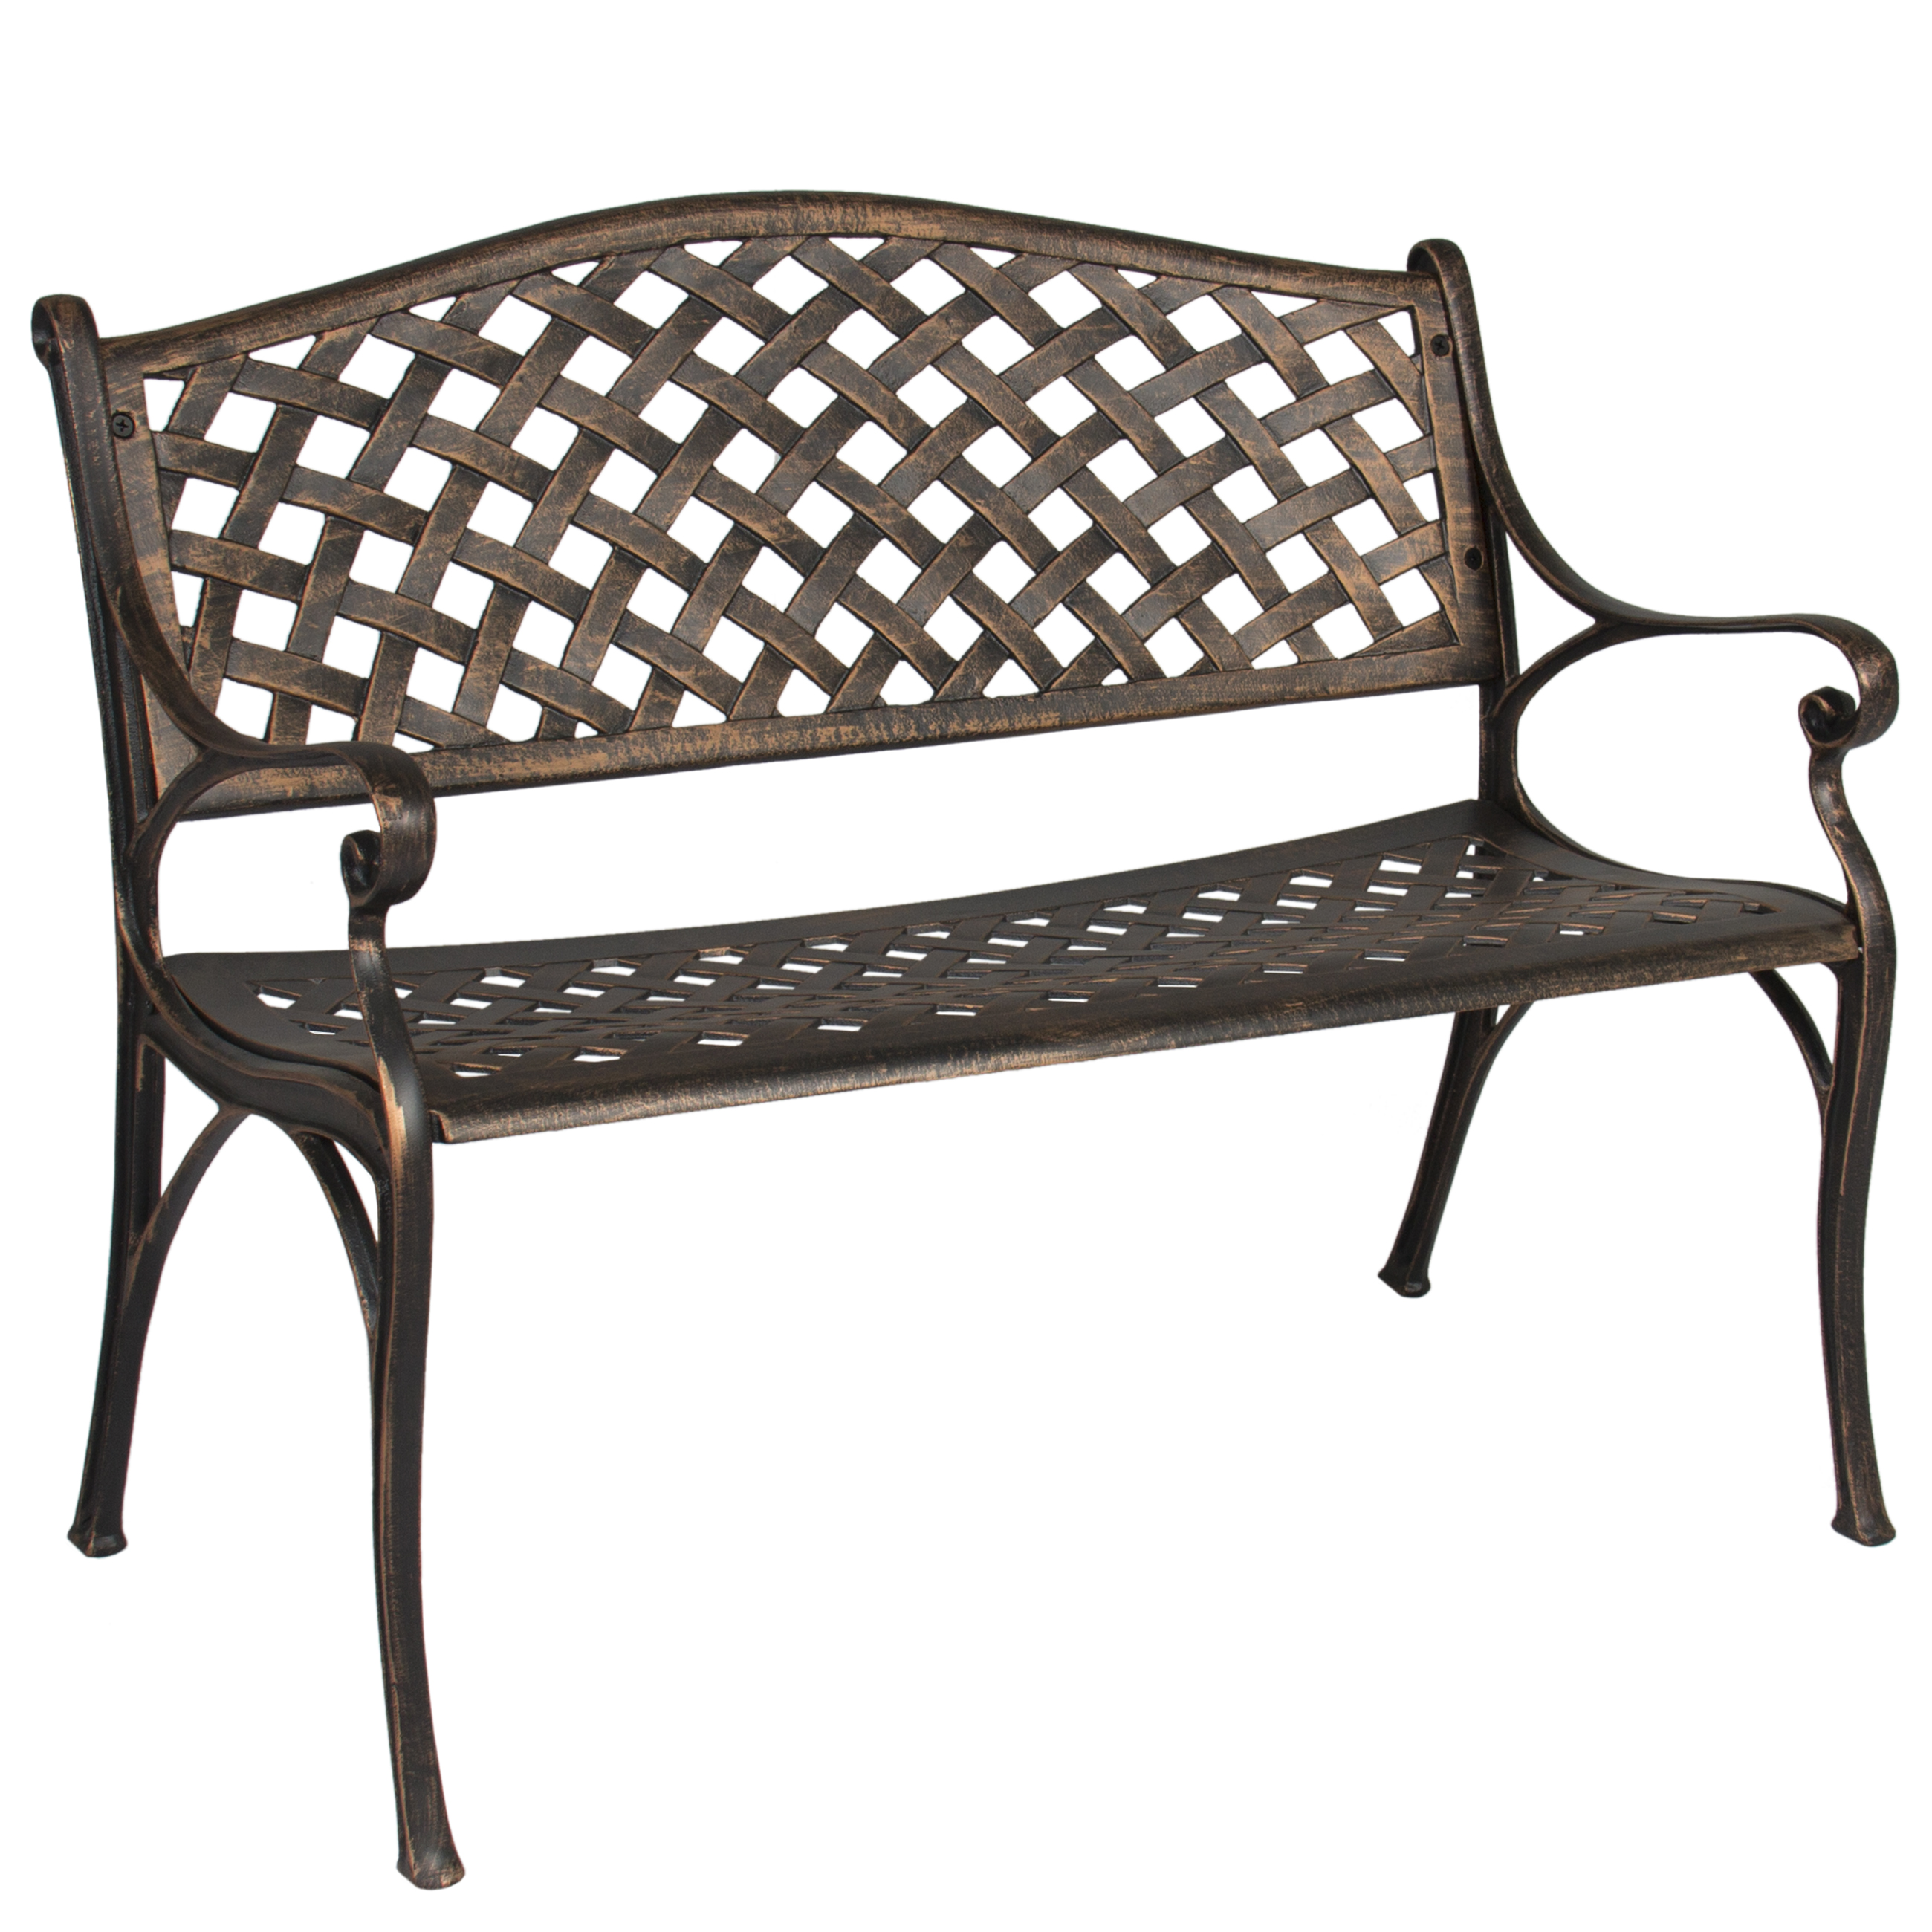 Best Choice Products Cozumel Antique Outdoor Copper Cast Aluminum Patio Bench - Bronze